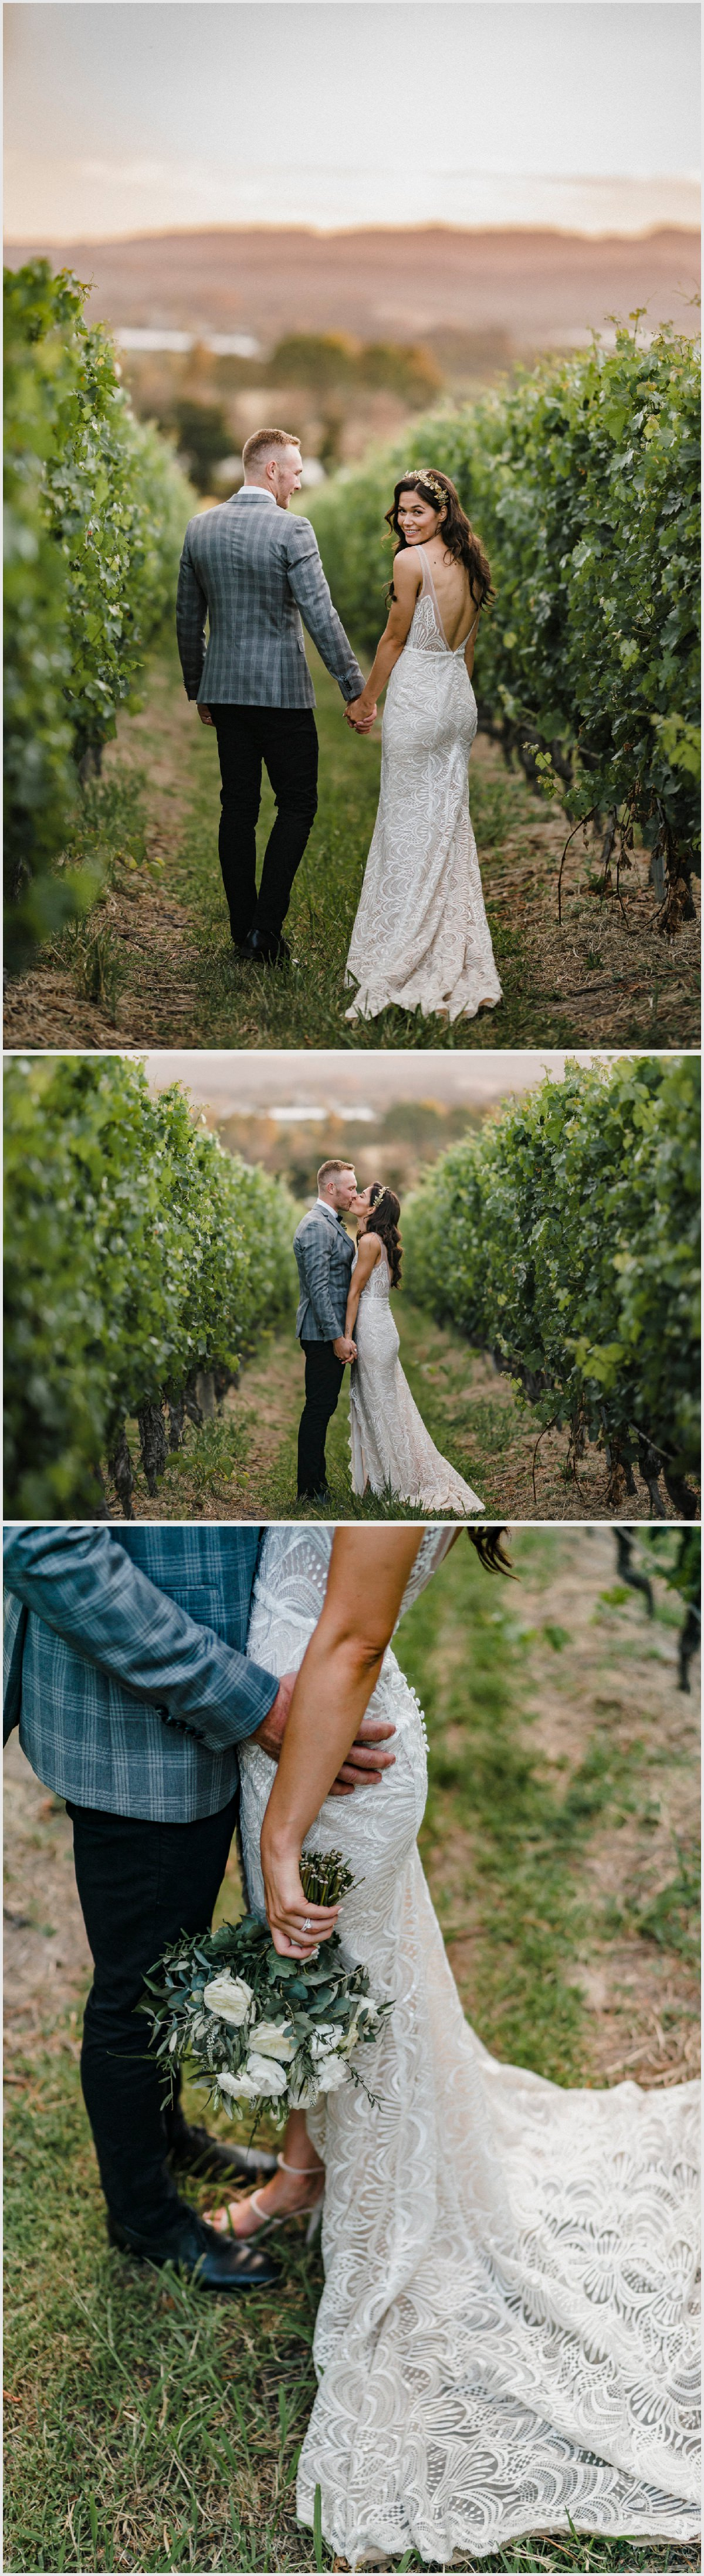 stones of the yarra valley wedding photography_0067.jpg